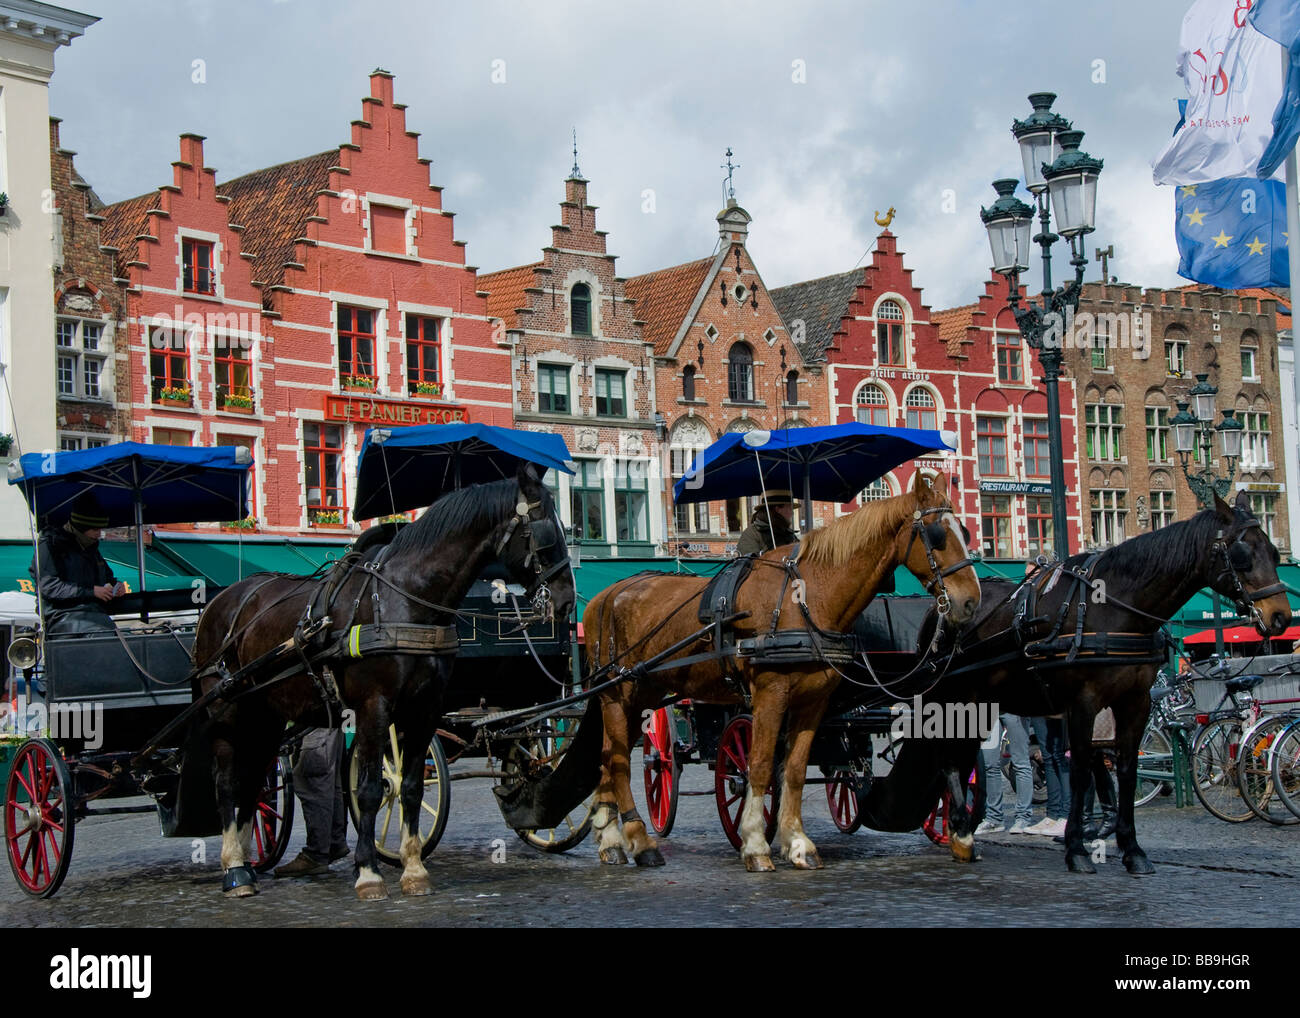 Horses and Carriages Brugge Belgium - Stock Image